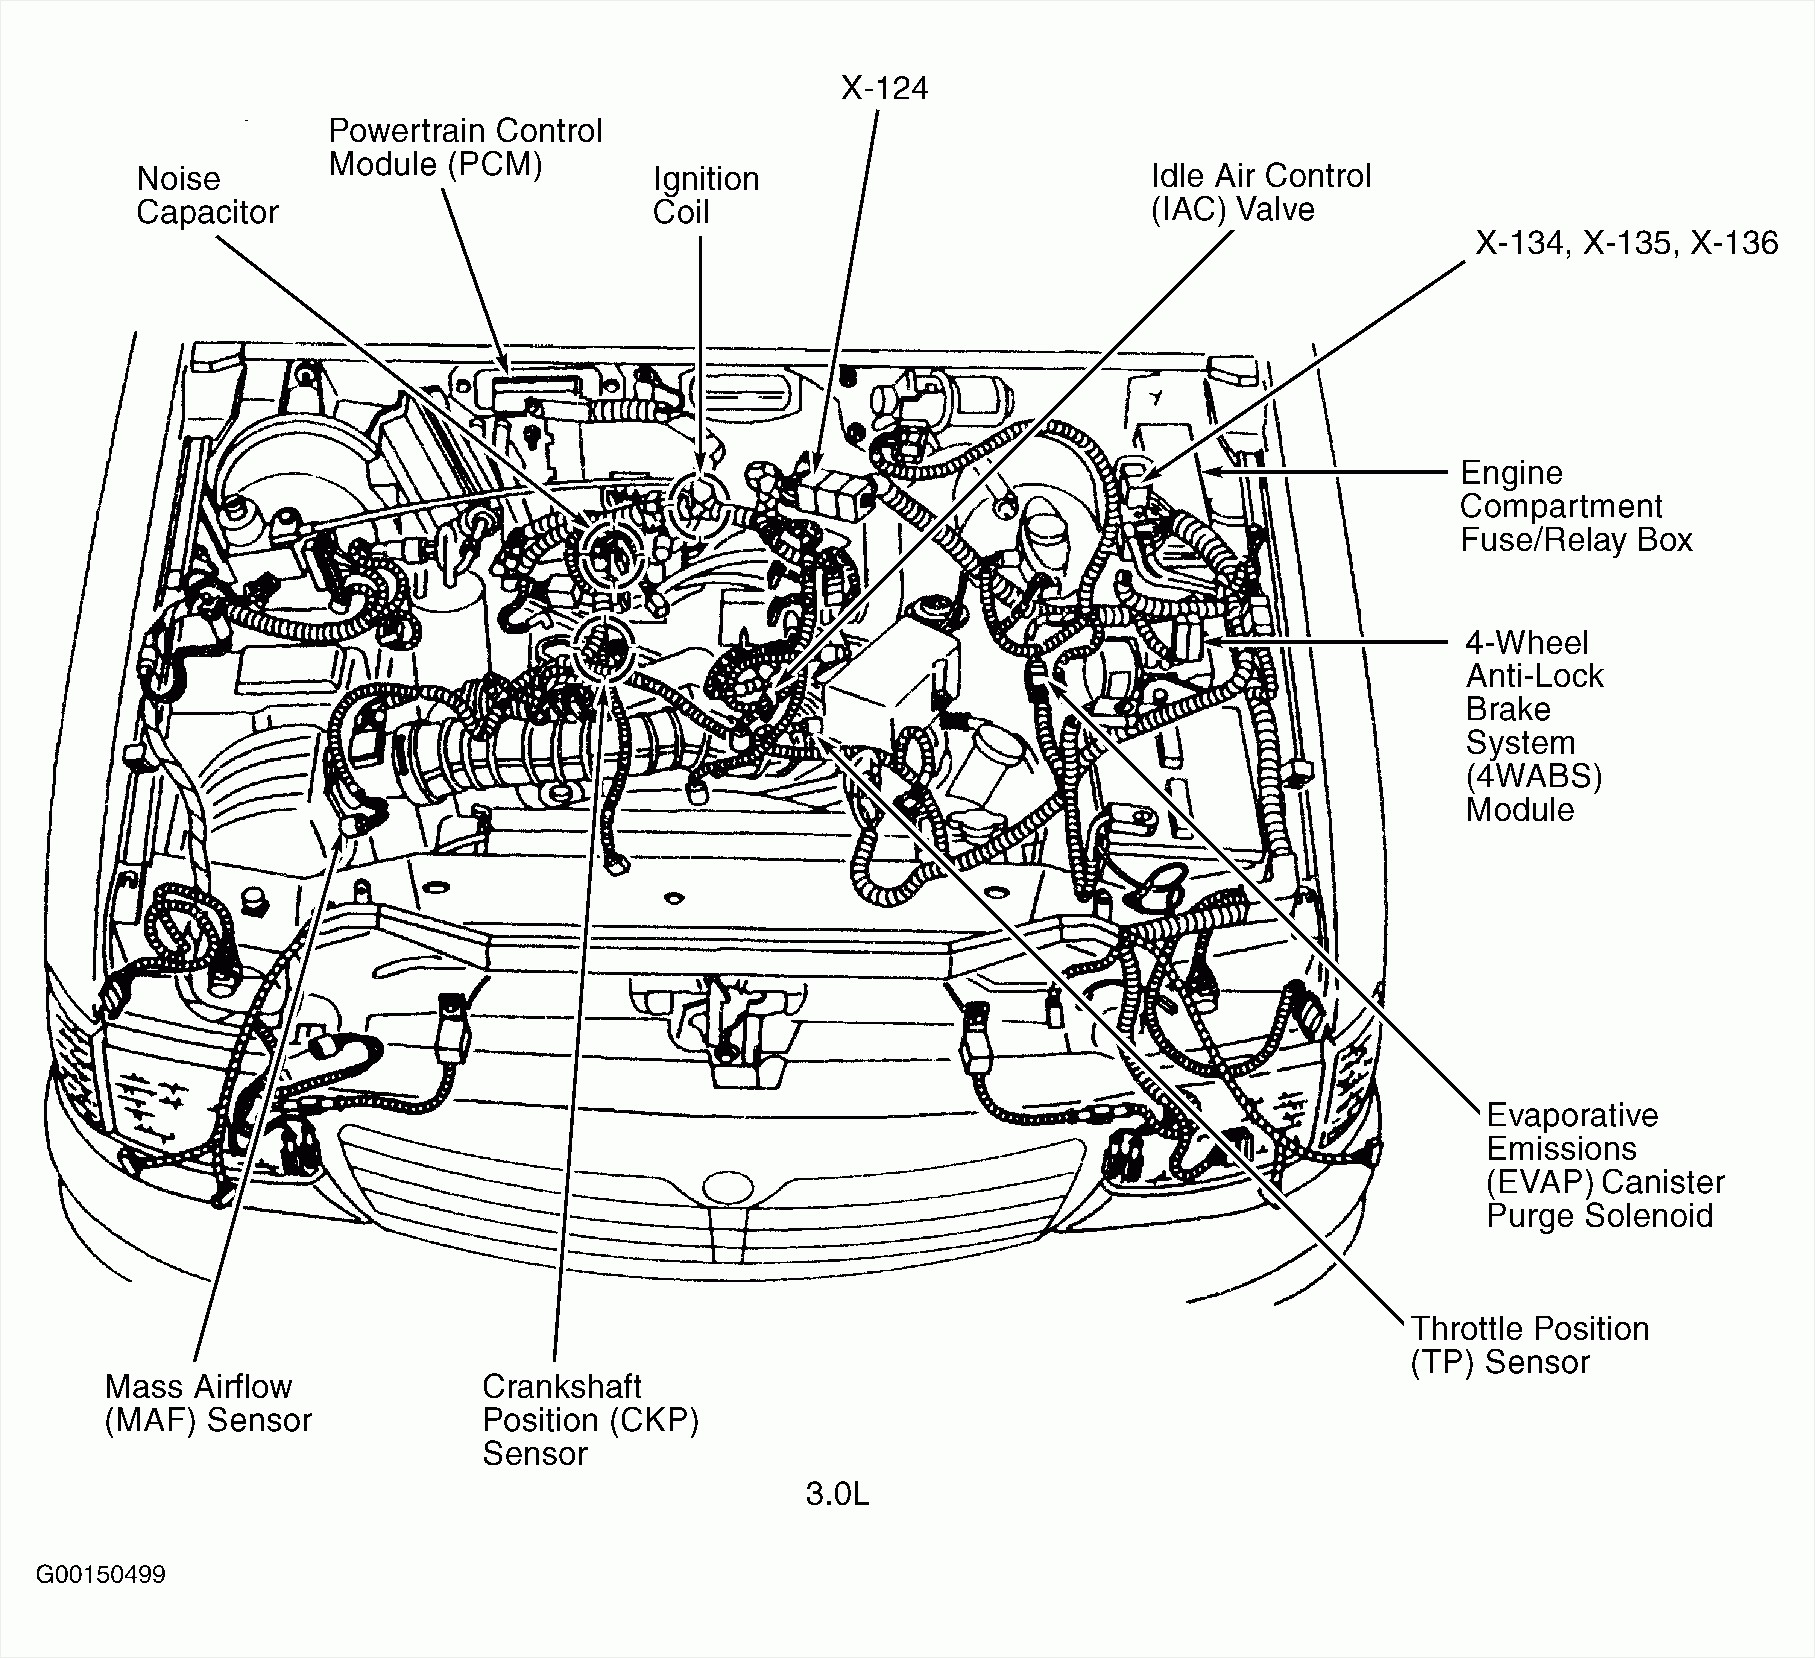 v6 engine diagram 3 8 1984 wiring diagram data rh 19 6 reisen fuer meister de Town Country Engine 3 8 Chevy 3.8 V6 Engine